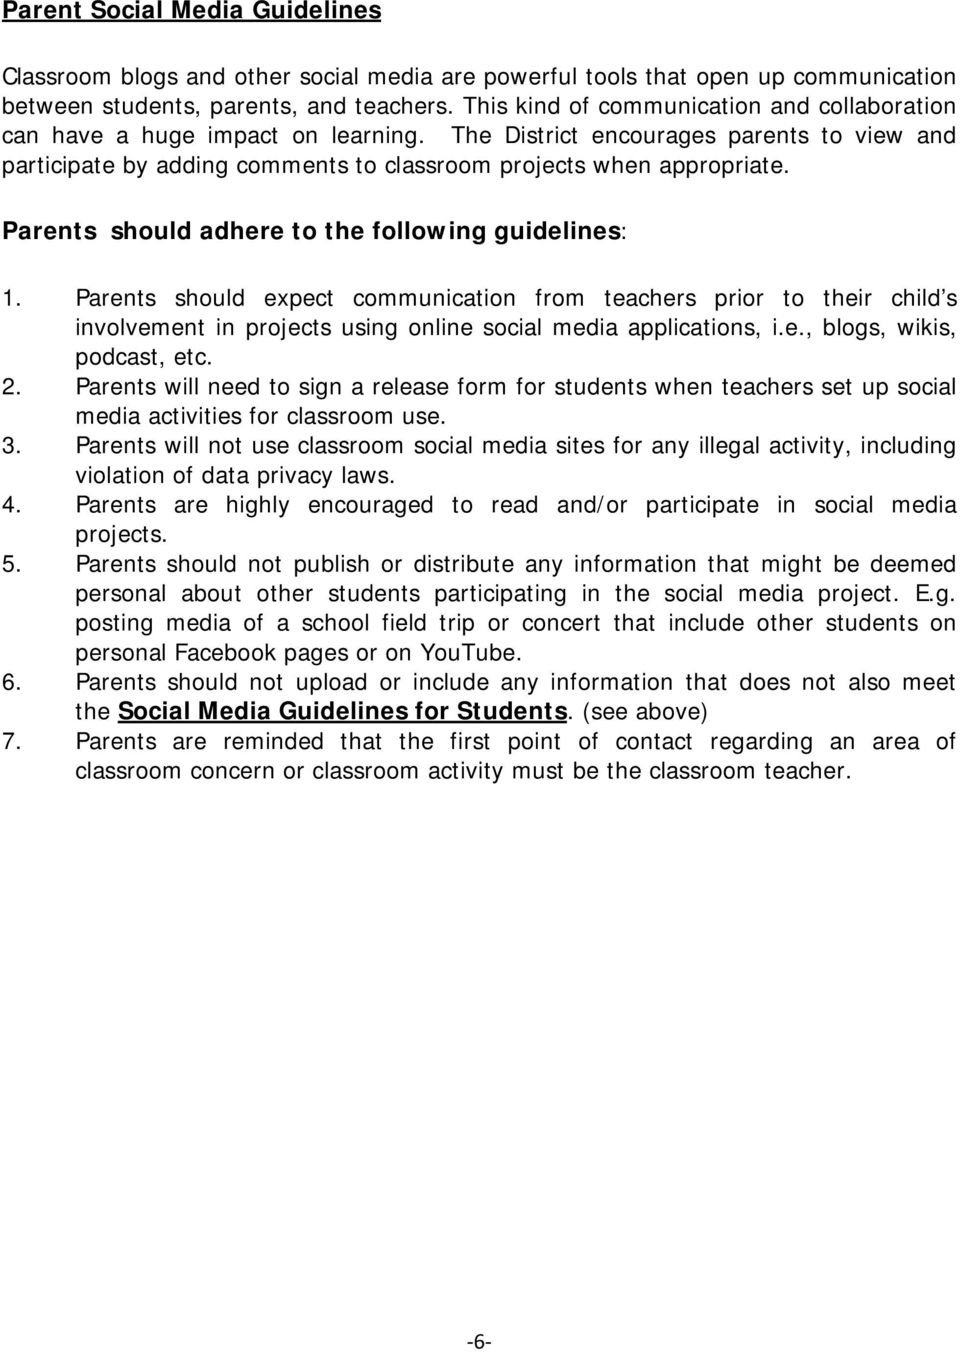 Parents should adhere to the following guidelines: 1. Parents should expect communication from teachers prior to their child s involvement in projects using online social media applications, i.e., blogs, wikis, podcast, etc.